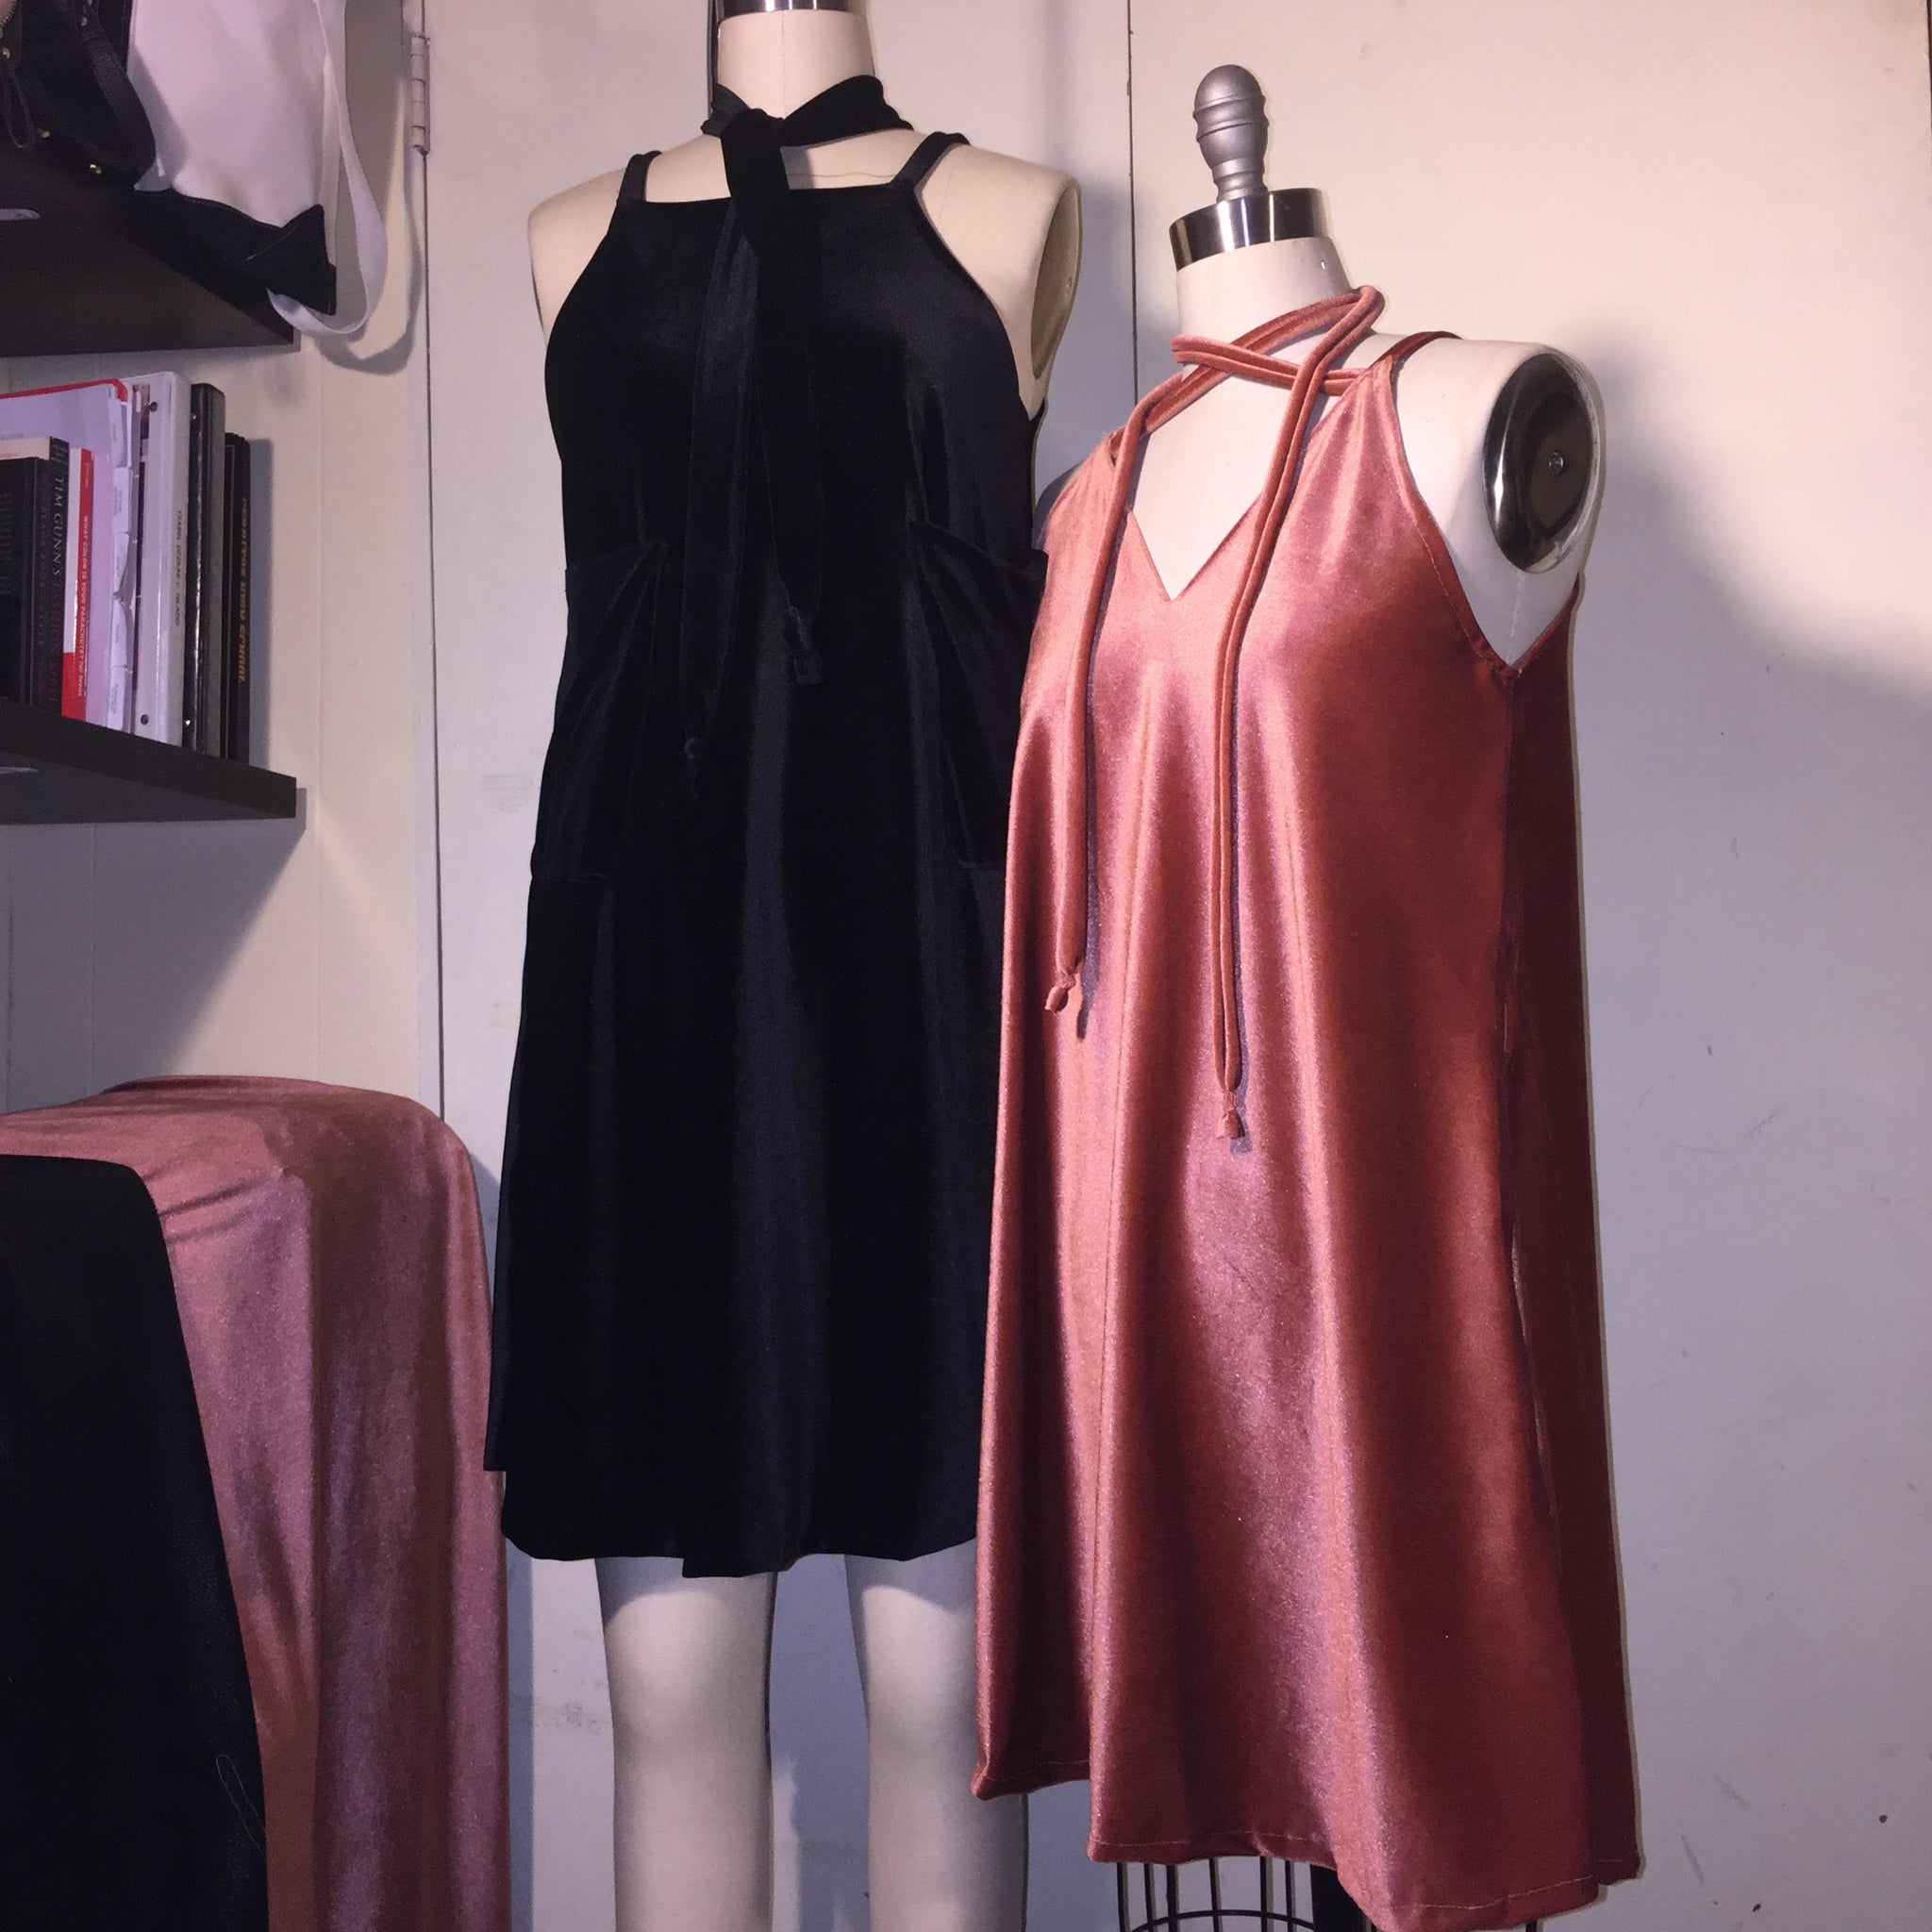 stretch Velvet slip over dress DIY fabric